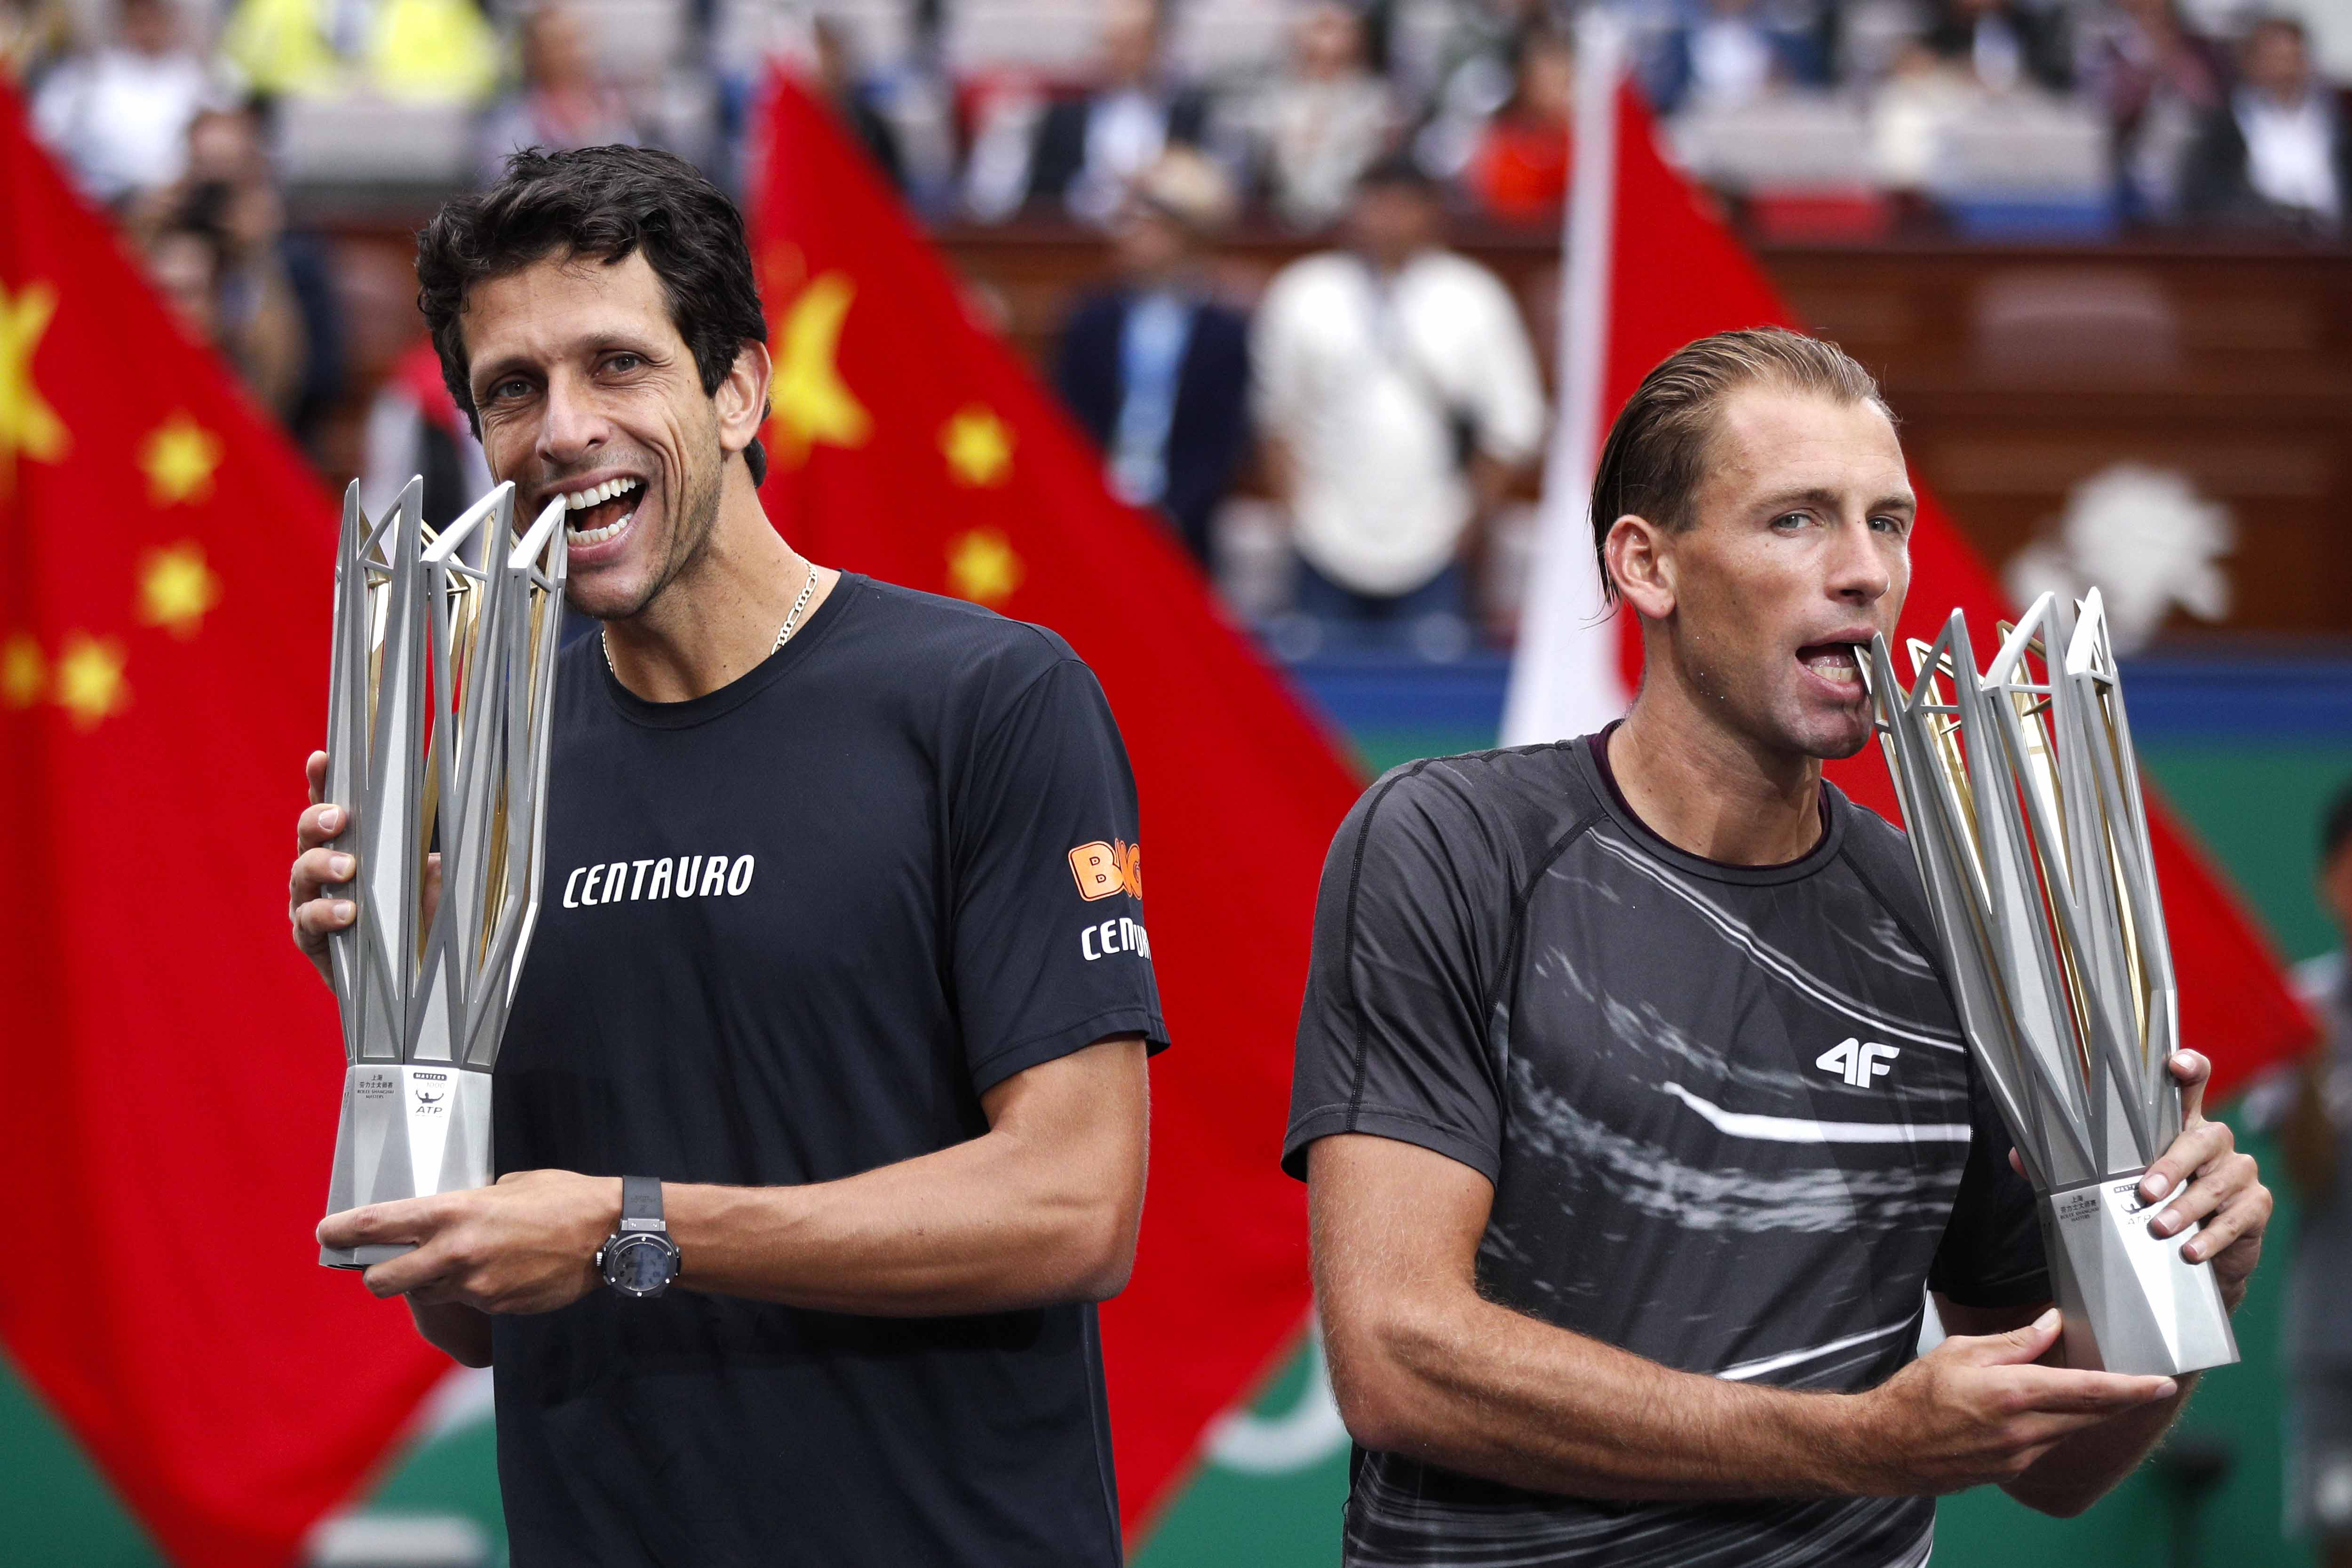 Marcelo Melo of Brazil (left) and his partner Lukasz Kubot of Poland bite their winning trophy as they pose for photographers after beating Jamie Murray of Britain and Bruno Shares of Brazil in the men's doubles final match of the Shanghai Masters tennis tournament at Qizhong Forest Sports City Tennis Center in Shanghai, China on  Sunday.